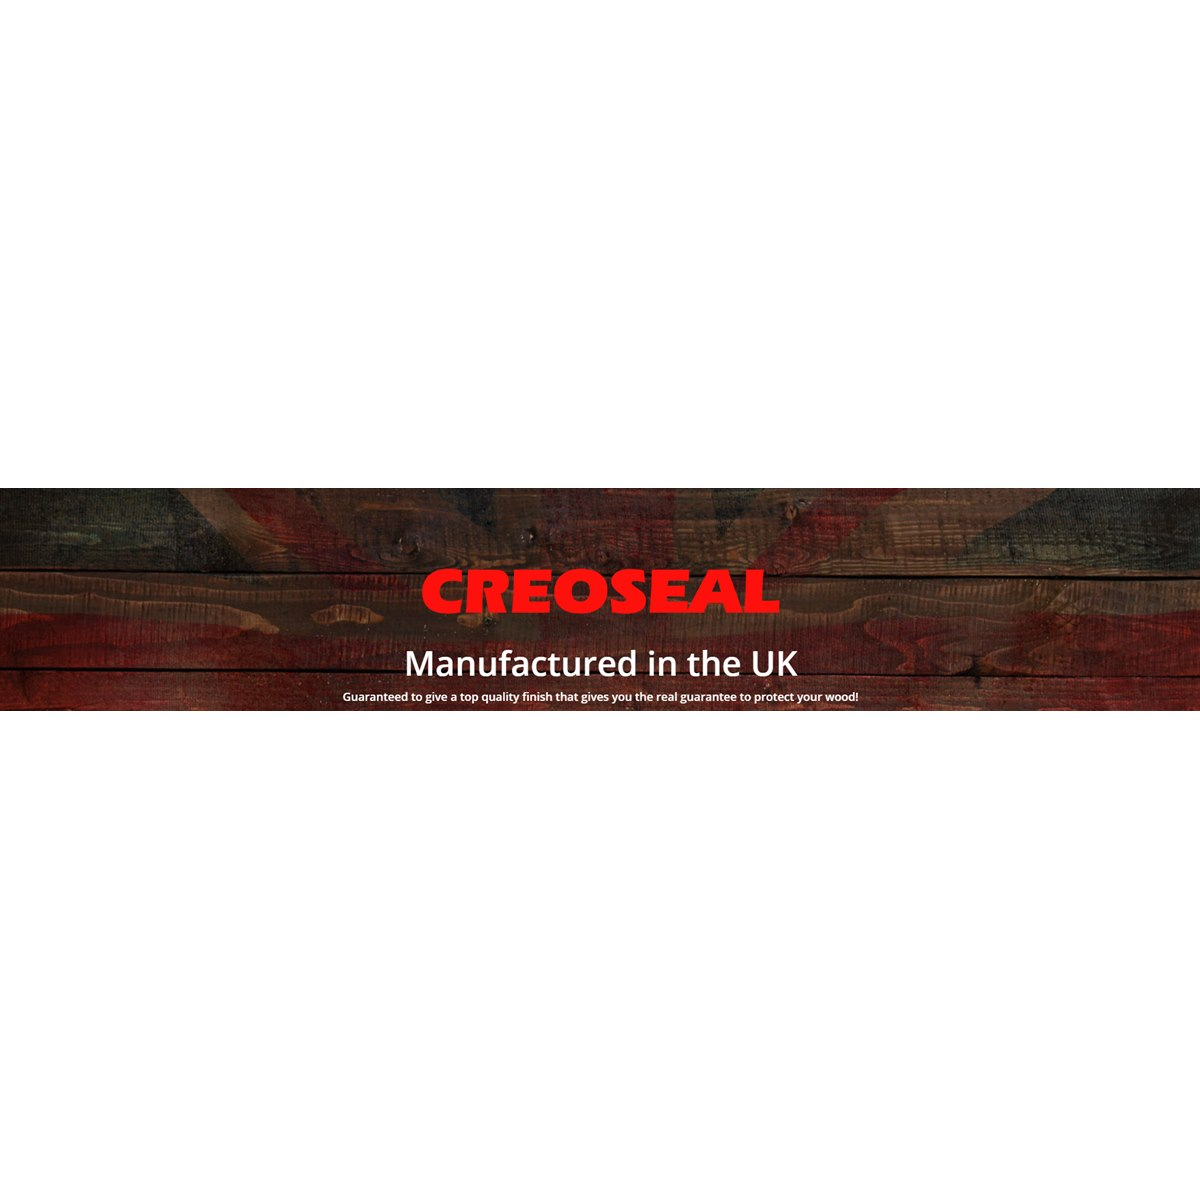 Where to Buy Creoseal